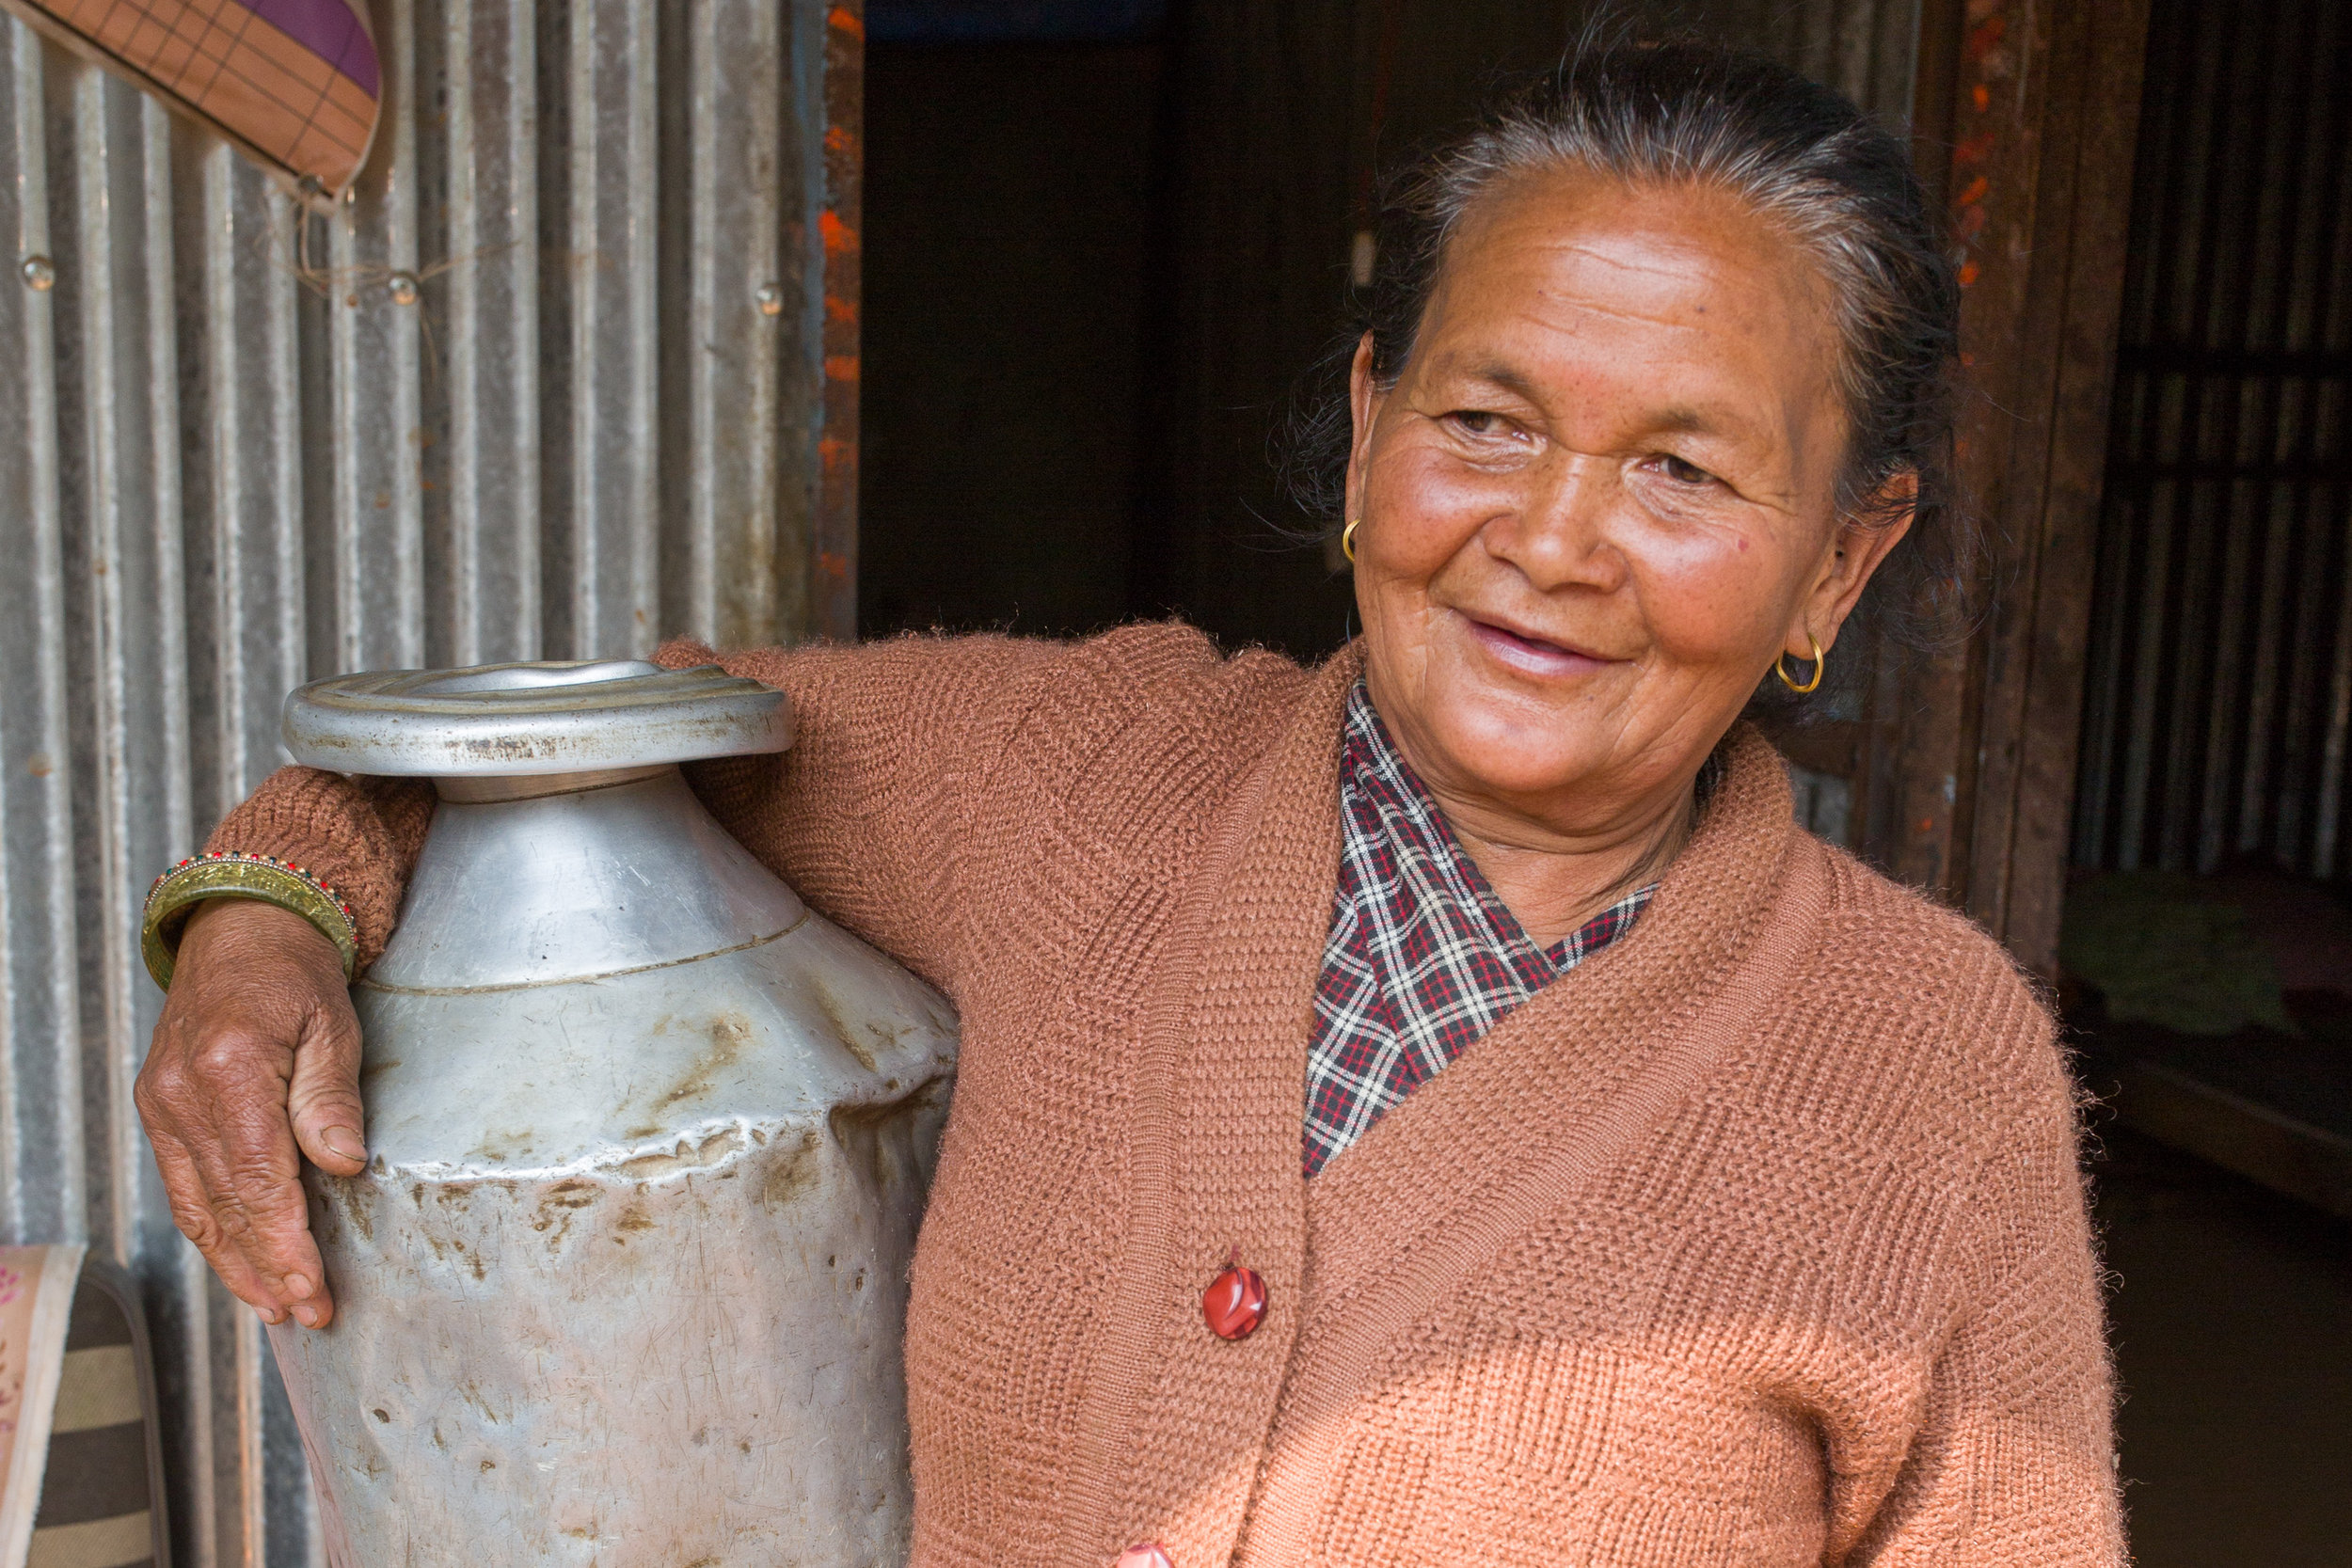 Keshari, a 74-year old widow, with a dented pot she salvaged from her crumbled home.